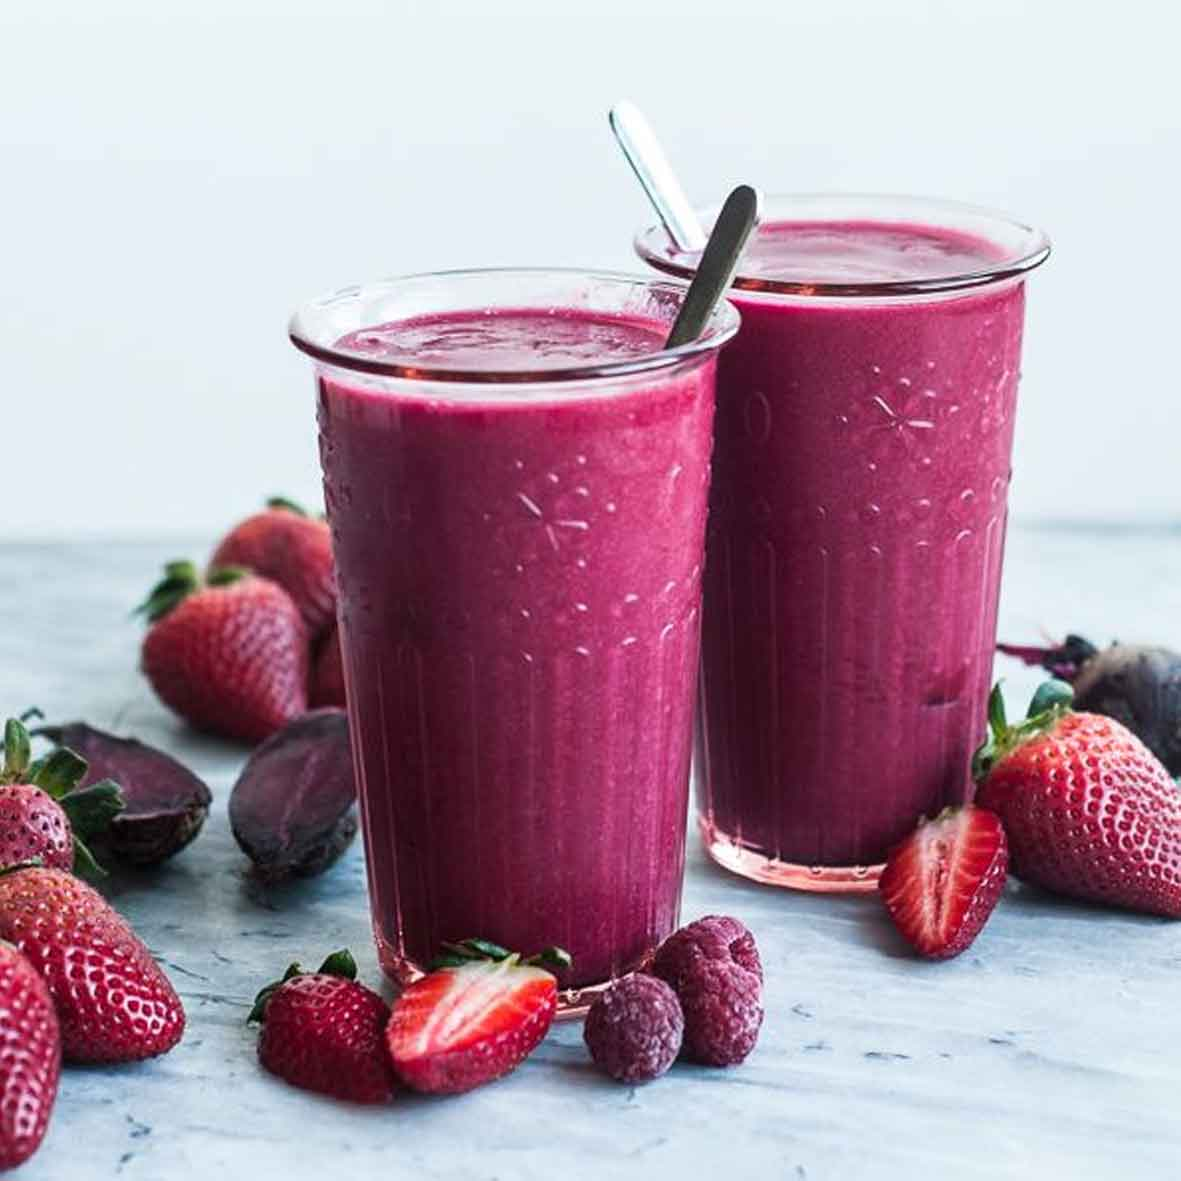 Yummy Berry Bananza Smoothie